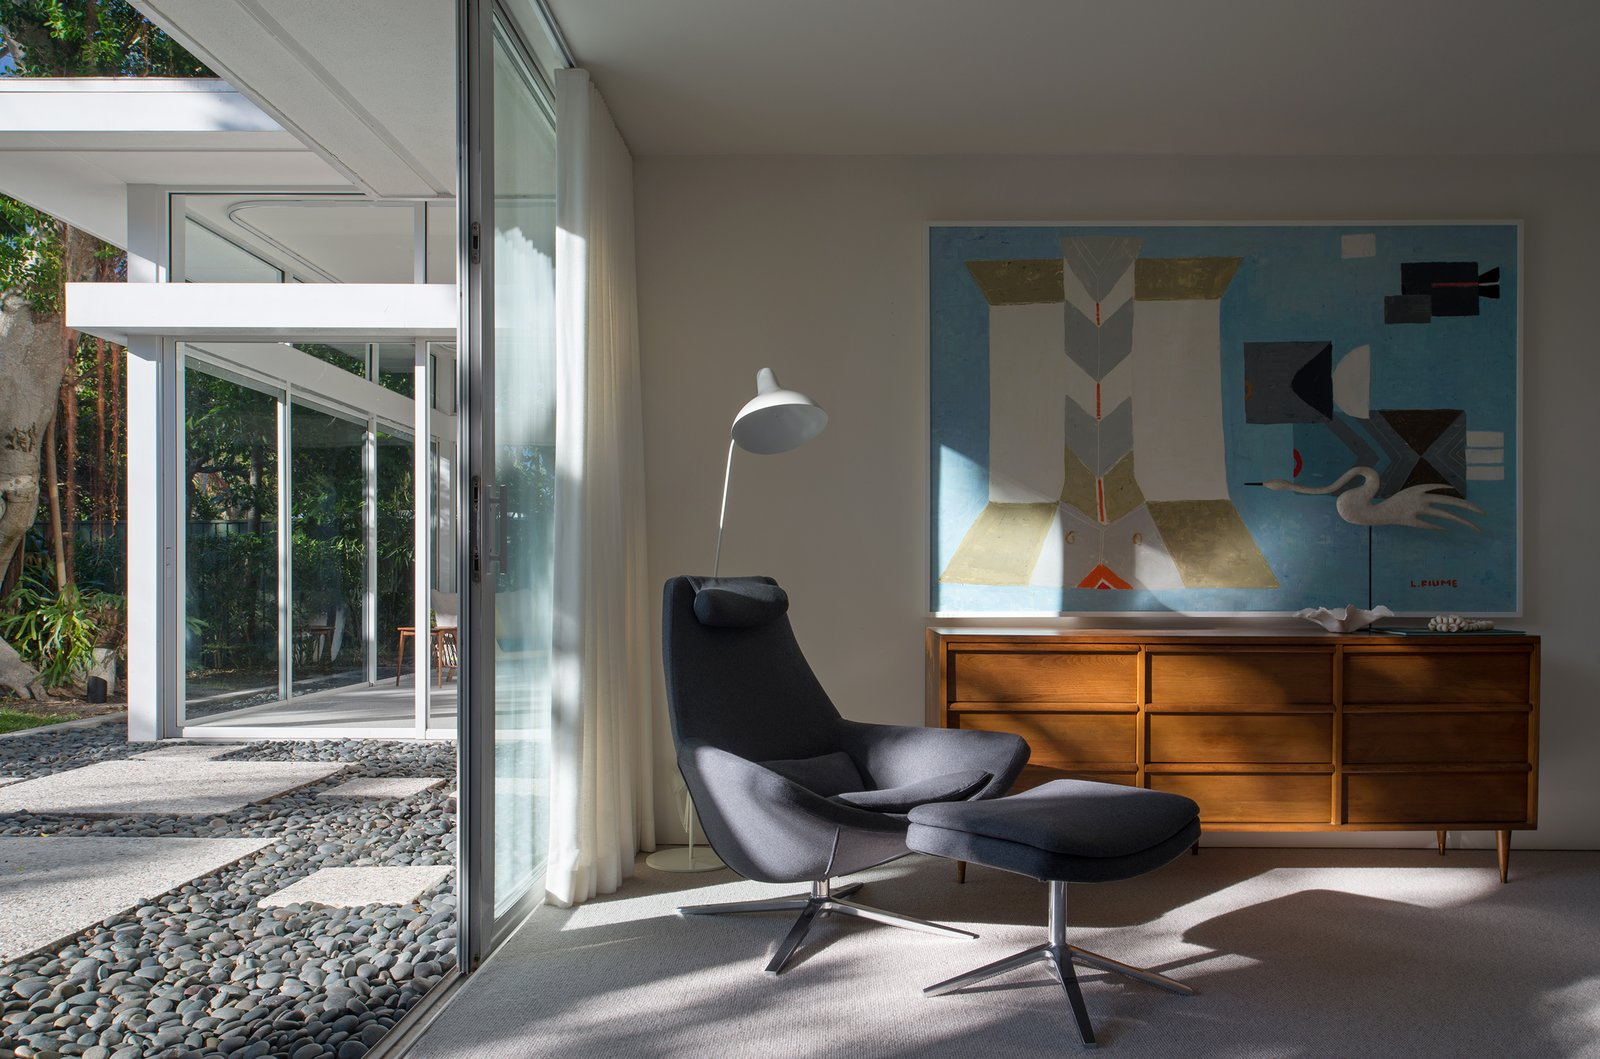 The architectural details of the home present dramatic shadows and highlights that evolve and dissolve throughout the day.